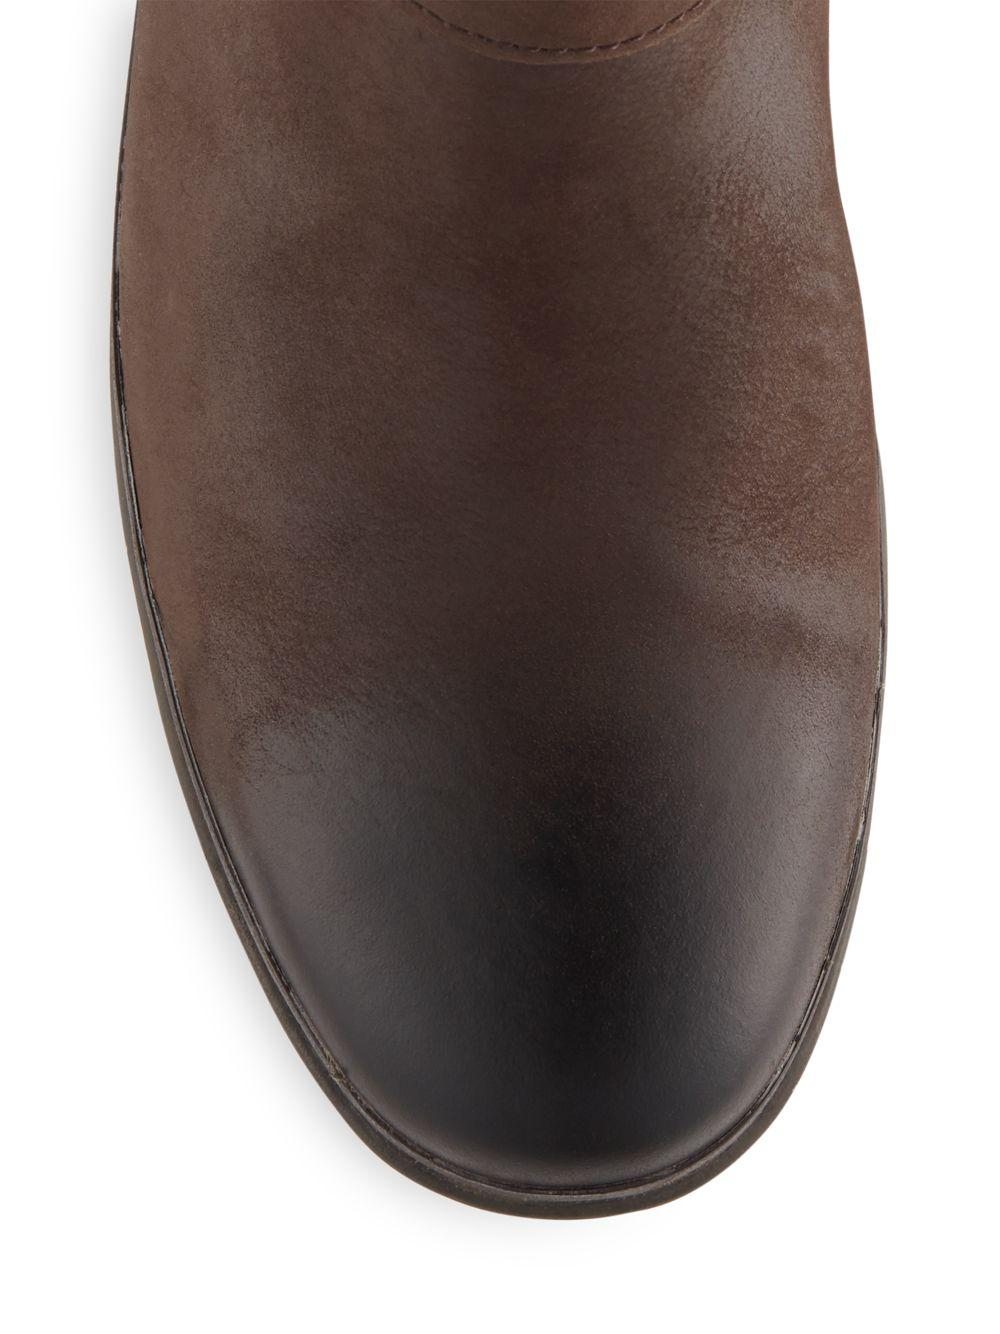 fc60b913be5 Ugg Brown Thomsen Uggpure-lined Suede & Leather Boots